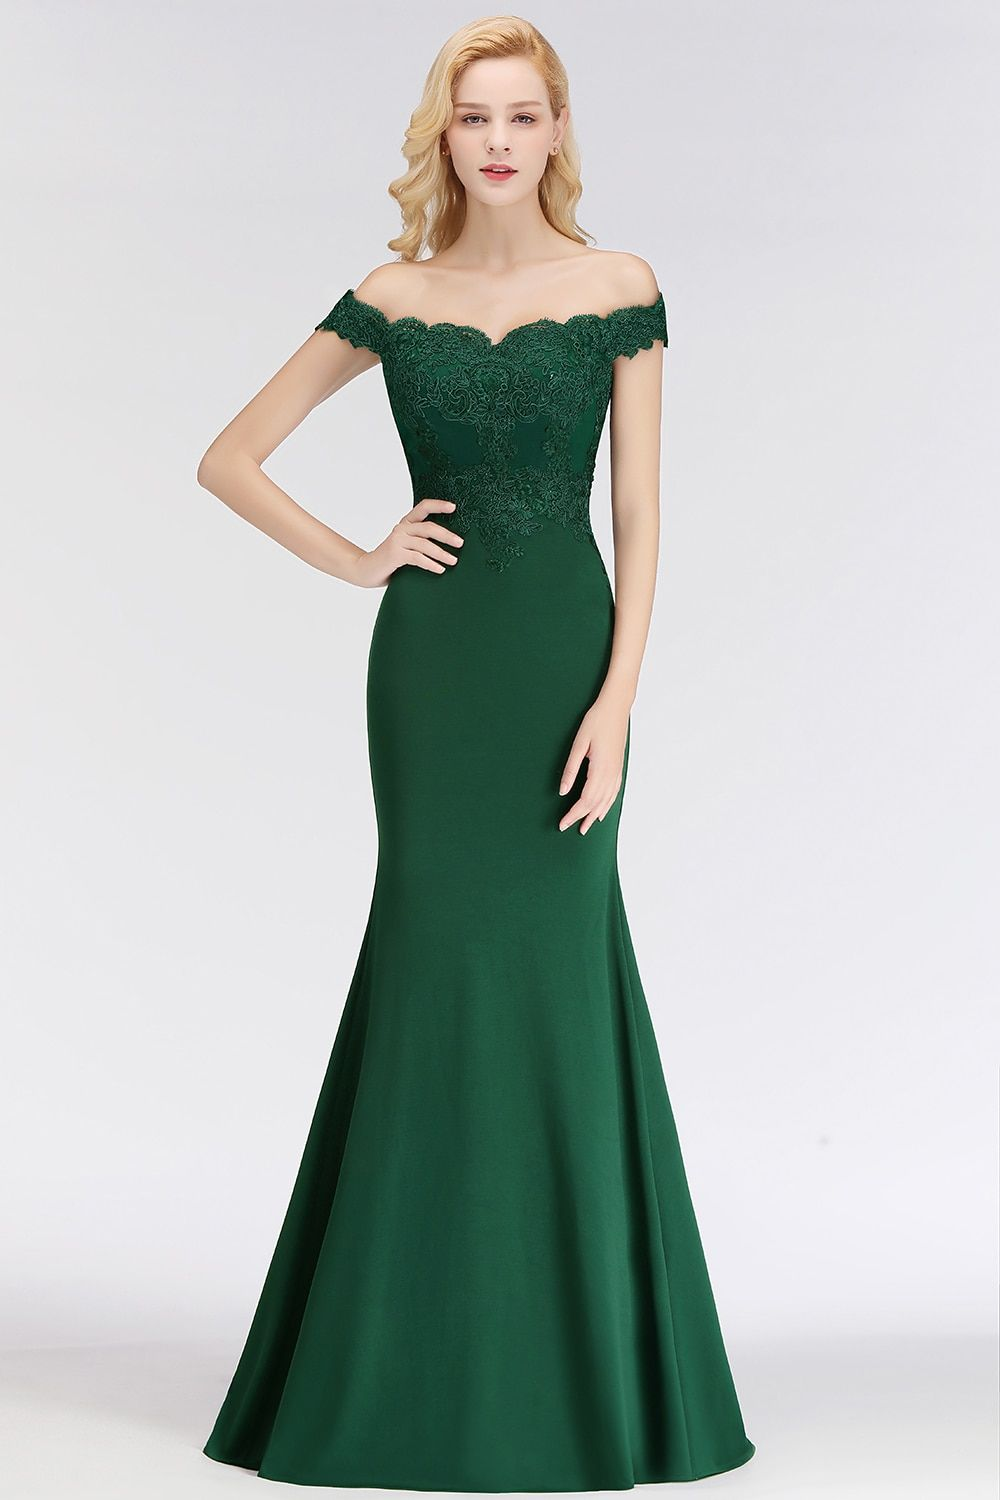 Customized 34 Colors Green Lace Evening Dresses 2018 Elegant Off Shoulder  Sweetheart Vintage Evening Gown Robe 3a3c201de530